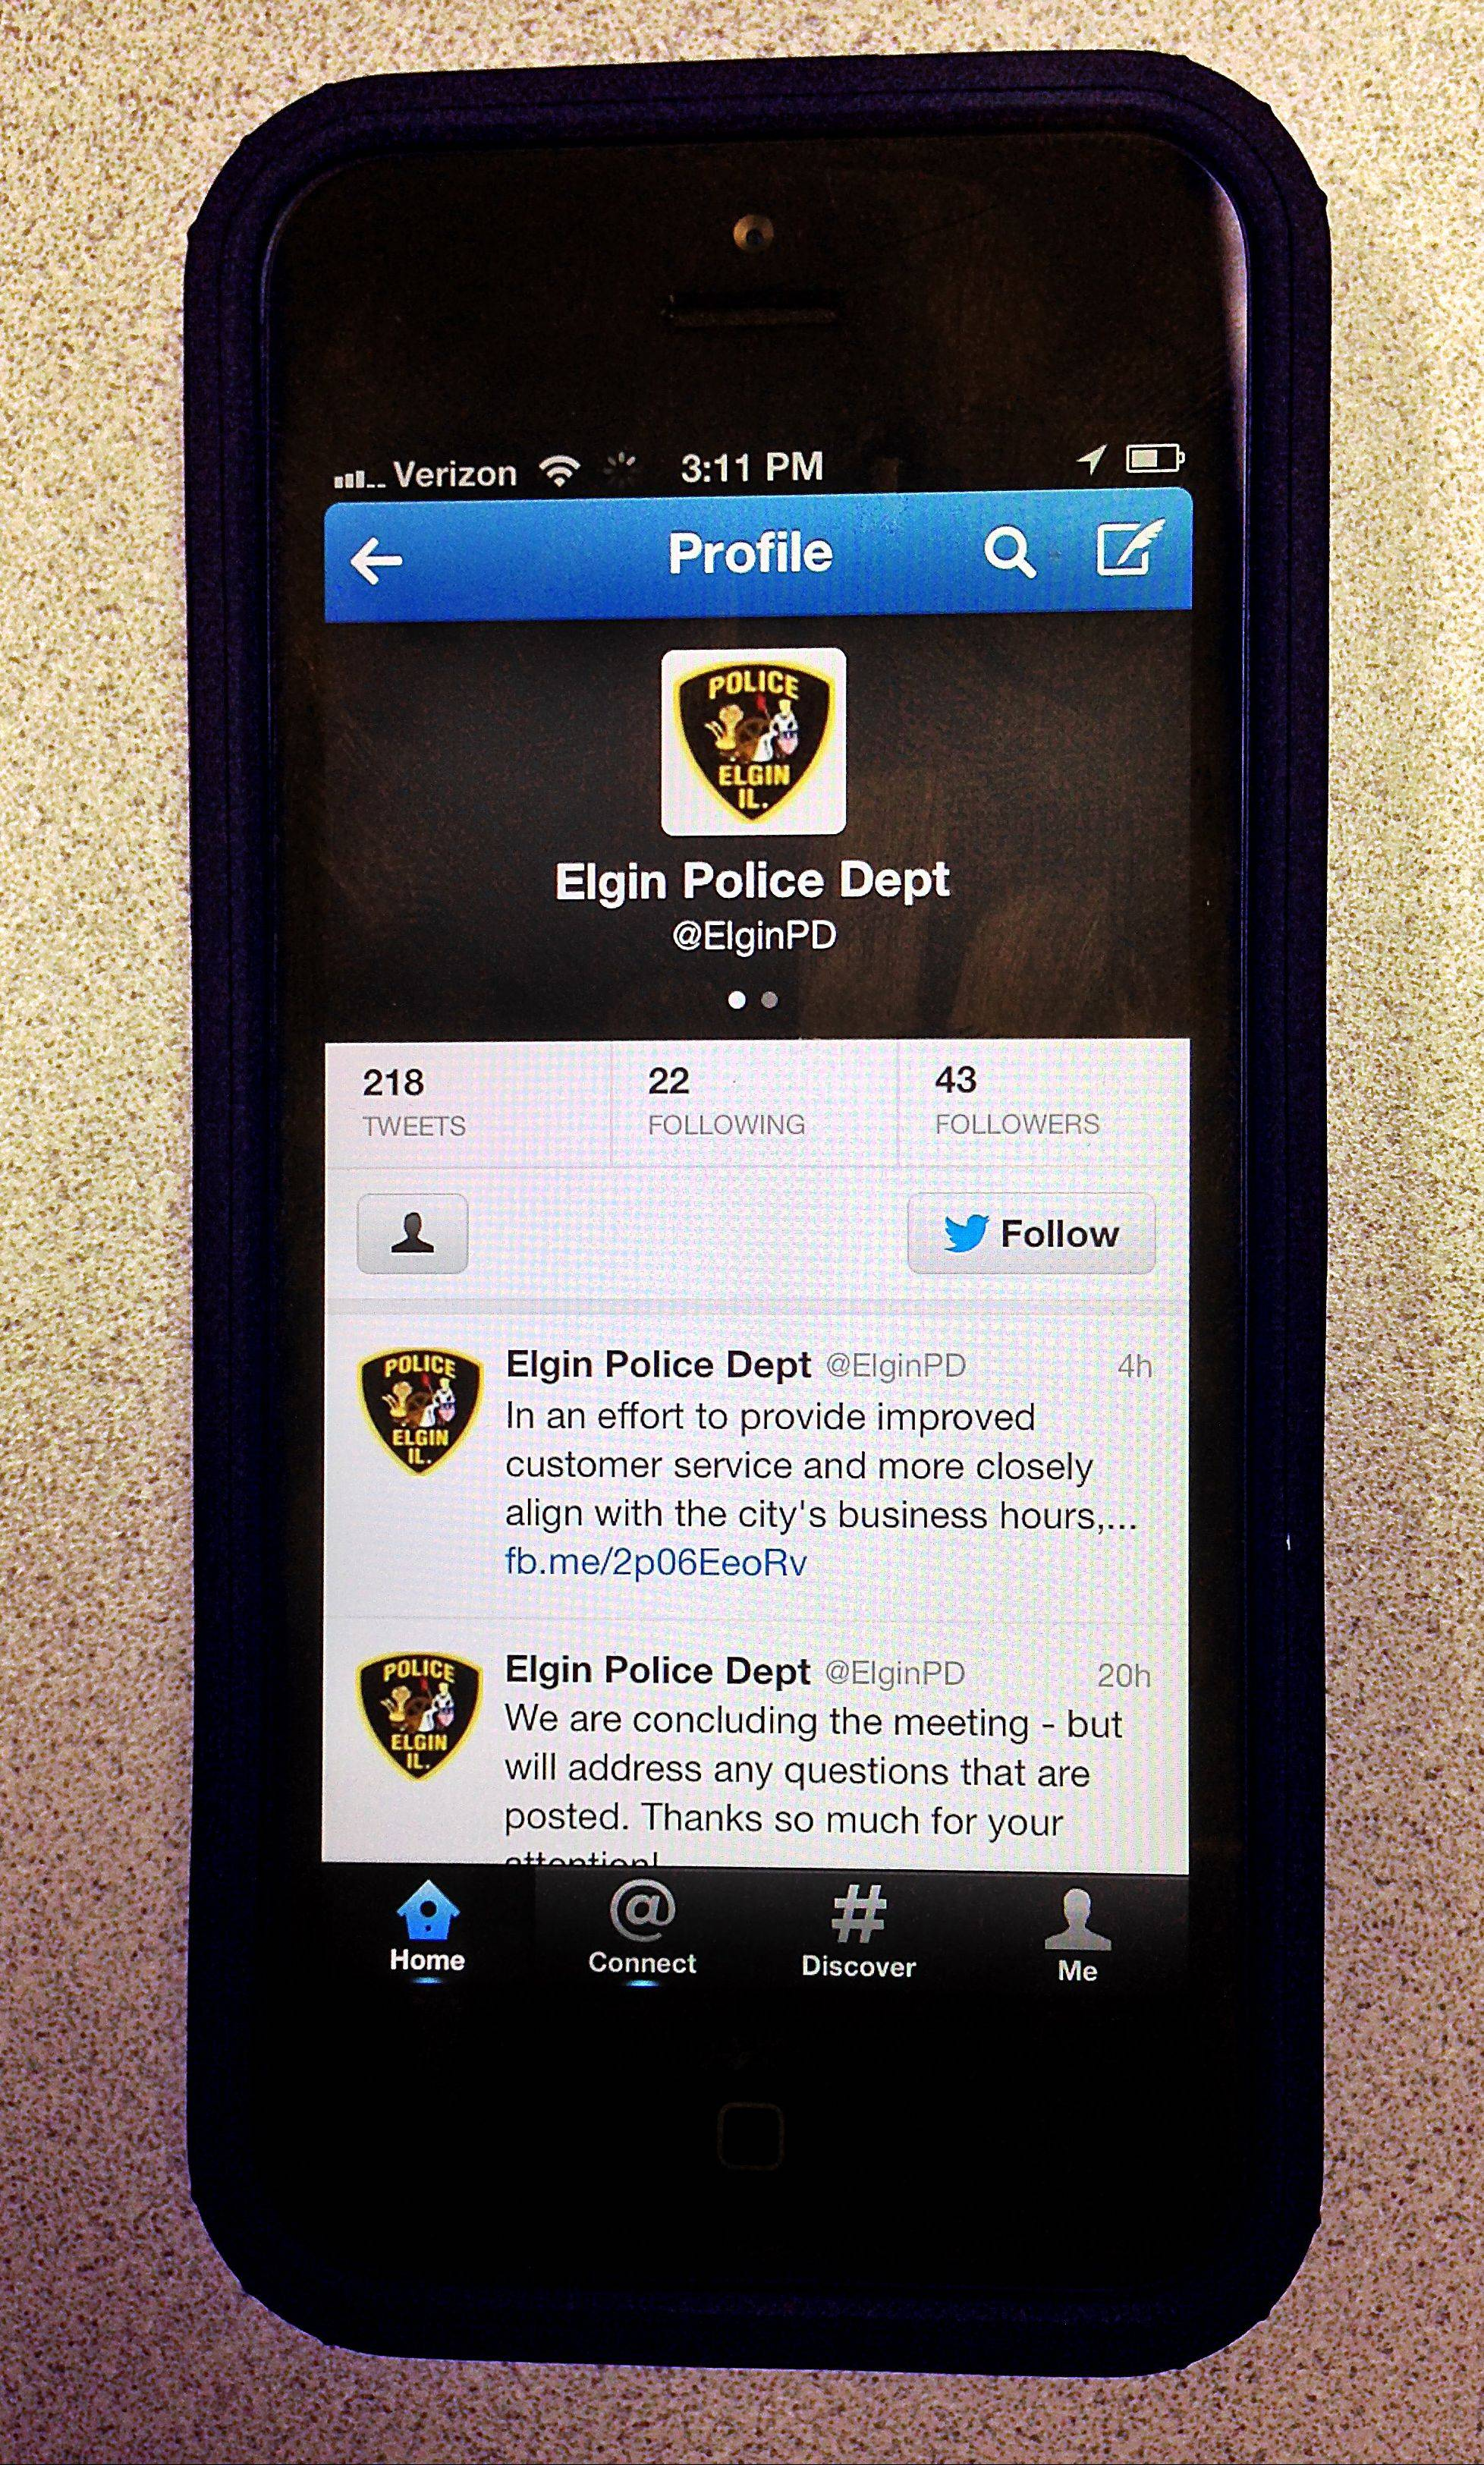 The Elgin Police Department is reaching out to residents through social media, including Twitter. Here, the department�s Twitter feed is pictured on an iPhone.